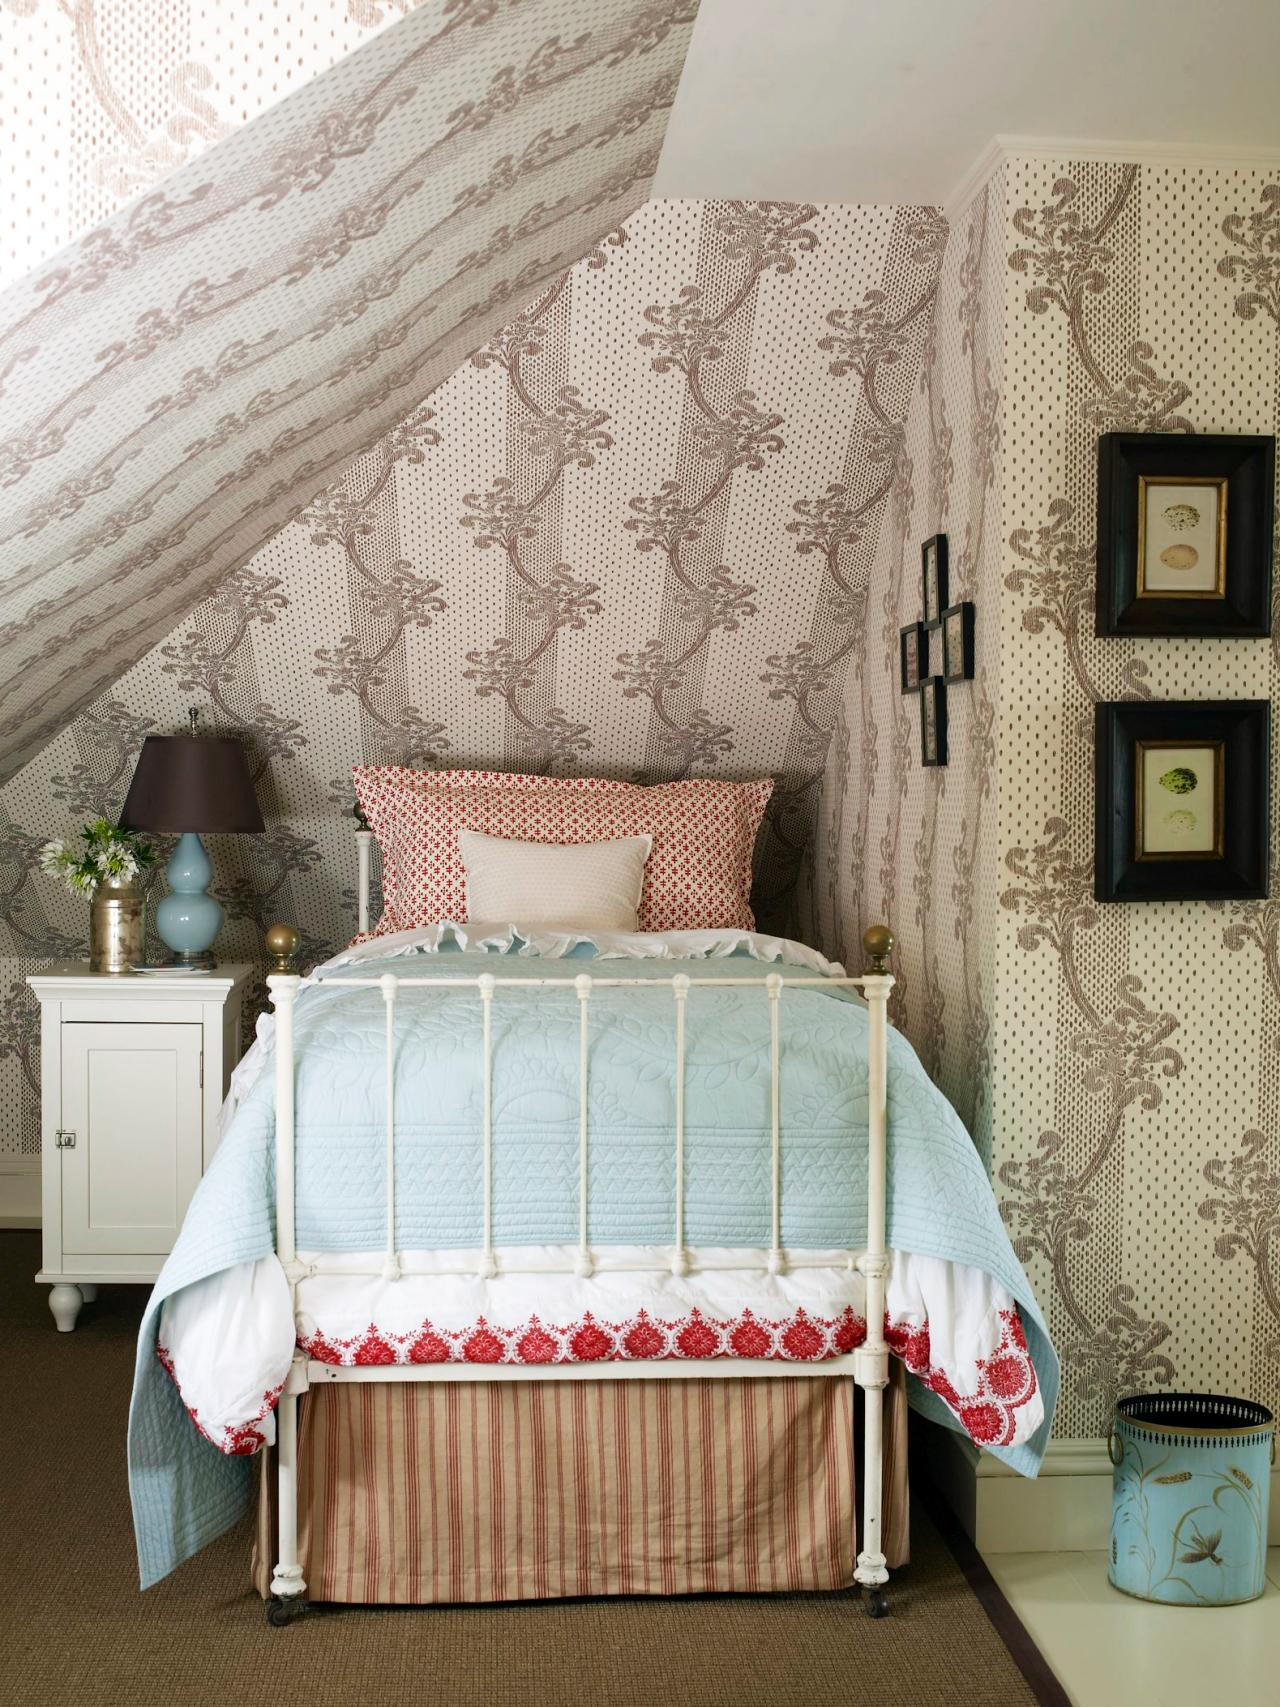 Fashion Inspired Guest Room: 25 Shabby-Chic Style Bedroom Design Ideas